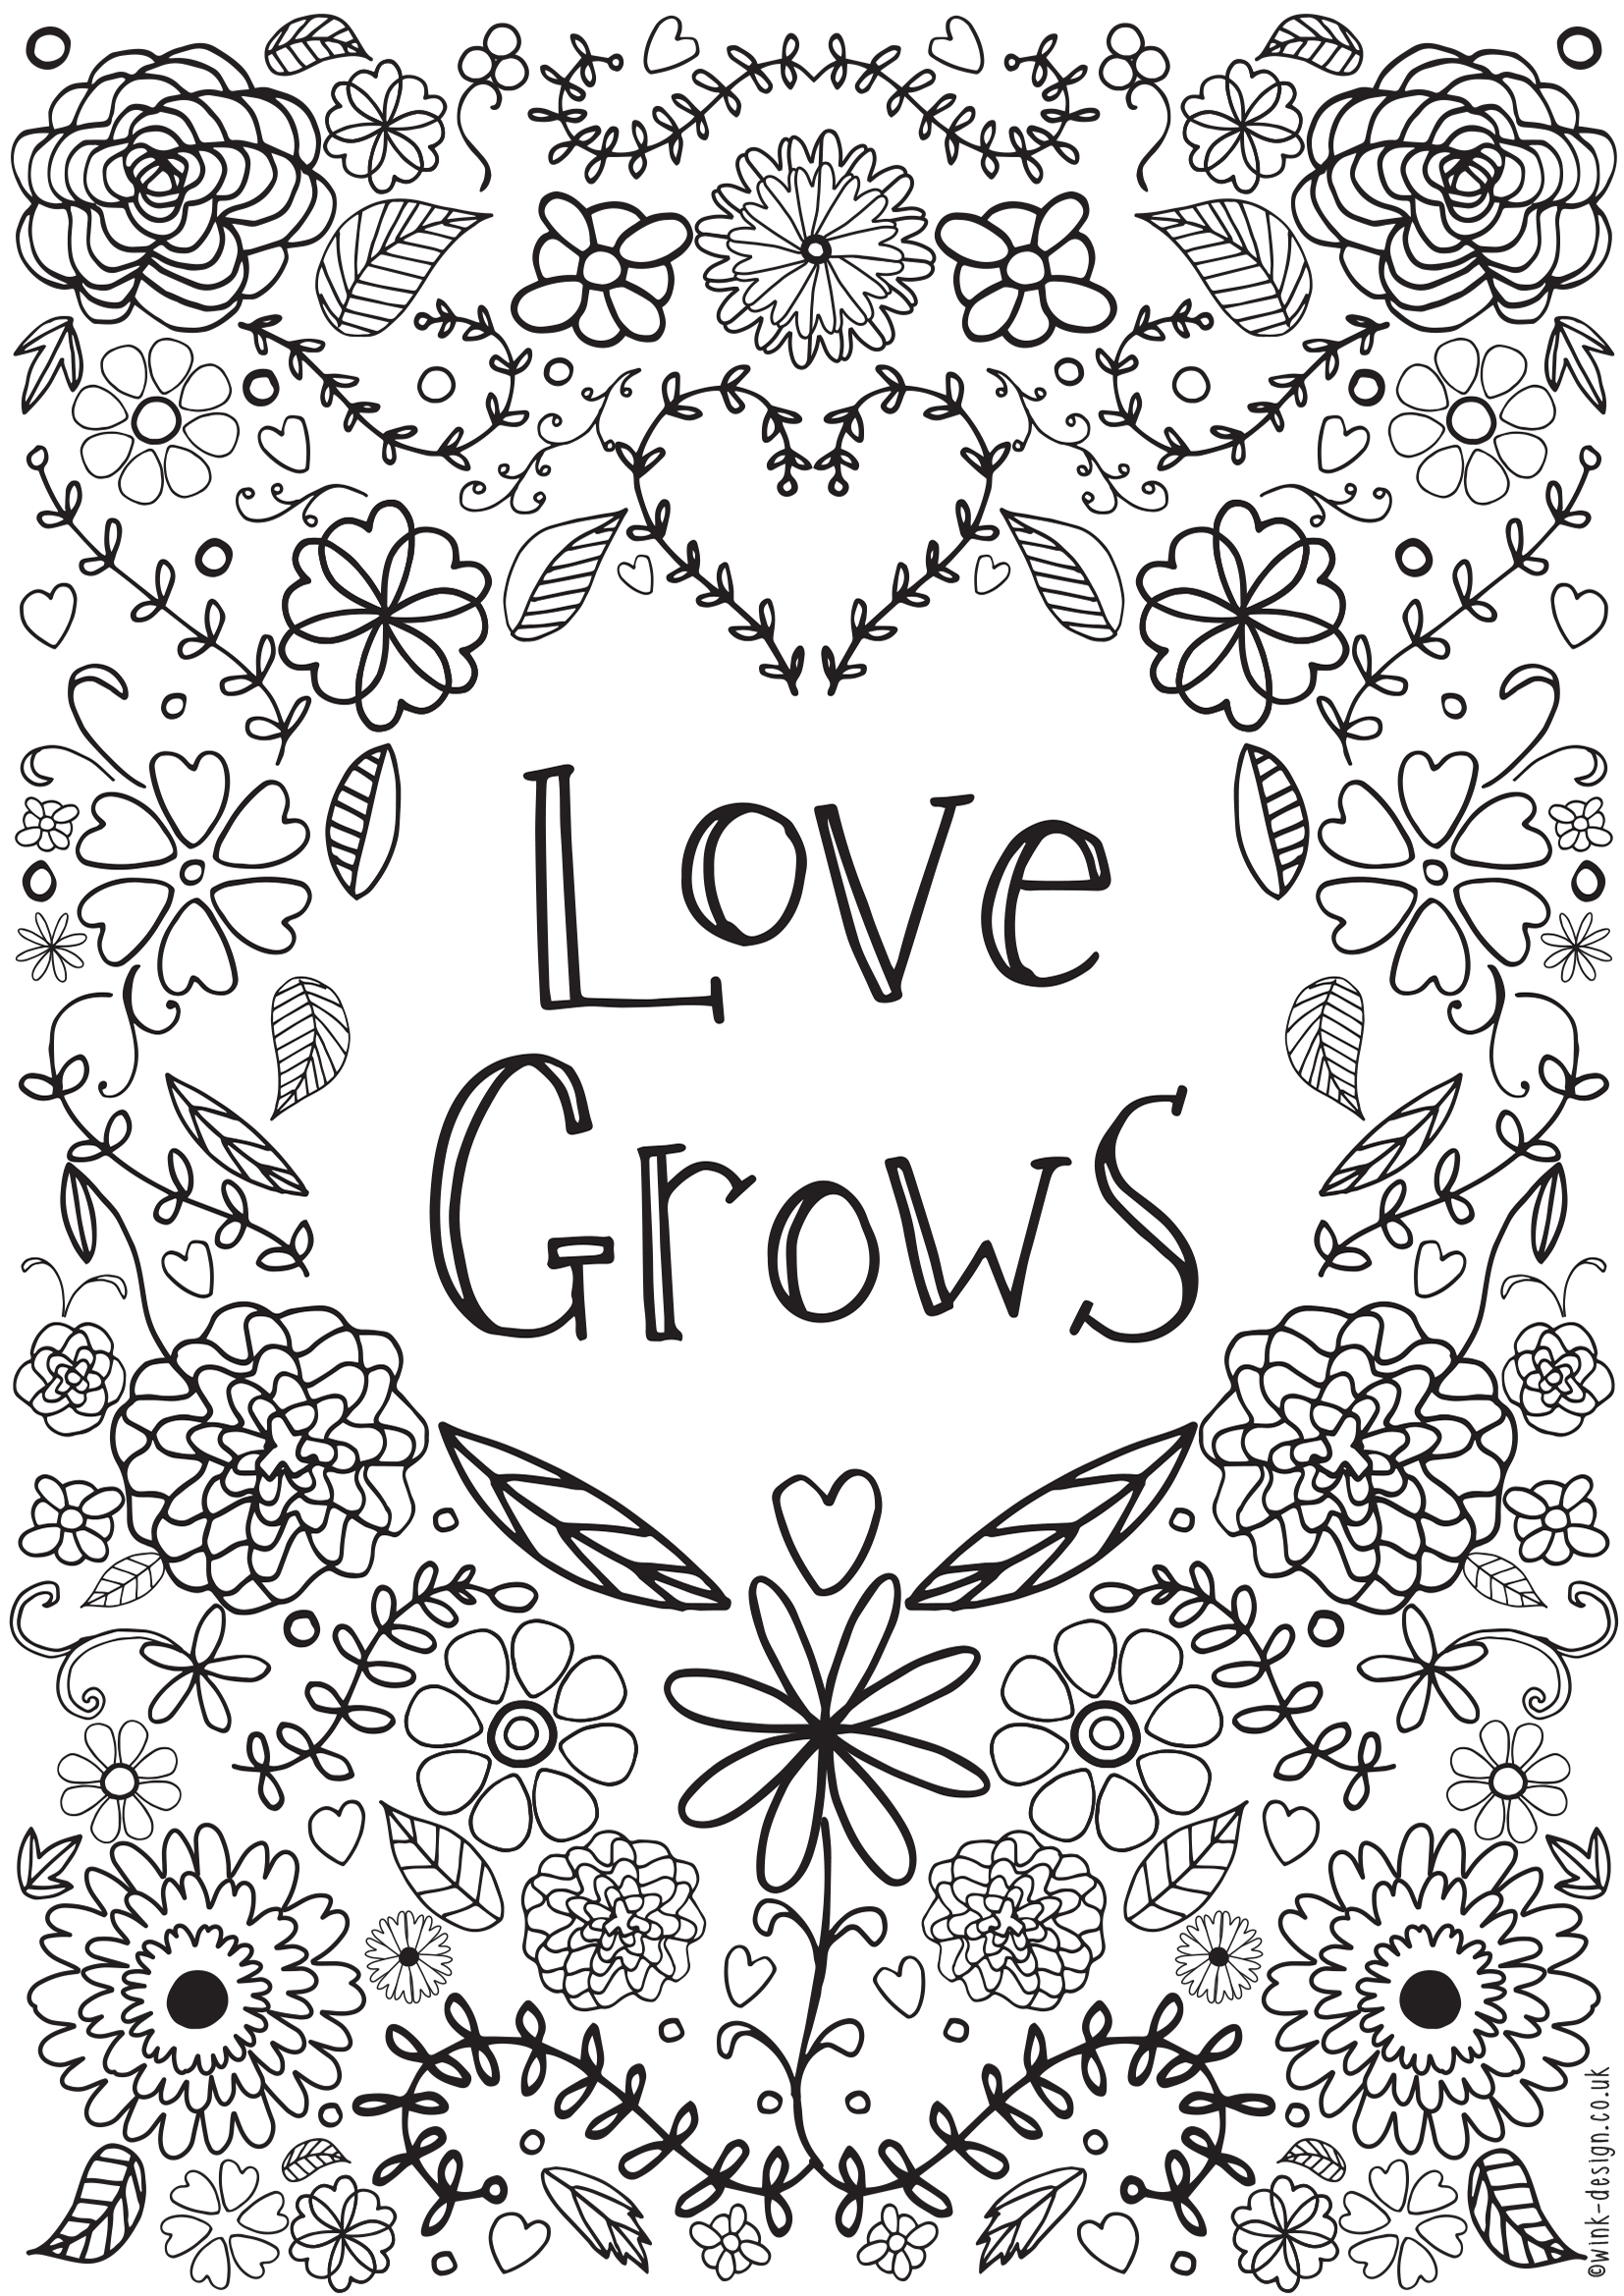 Free Printable Inspirational Coloring Pages - Free Printable Adult Colouring Pages for the New Year